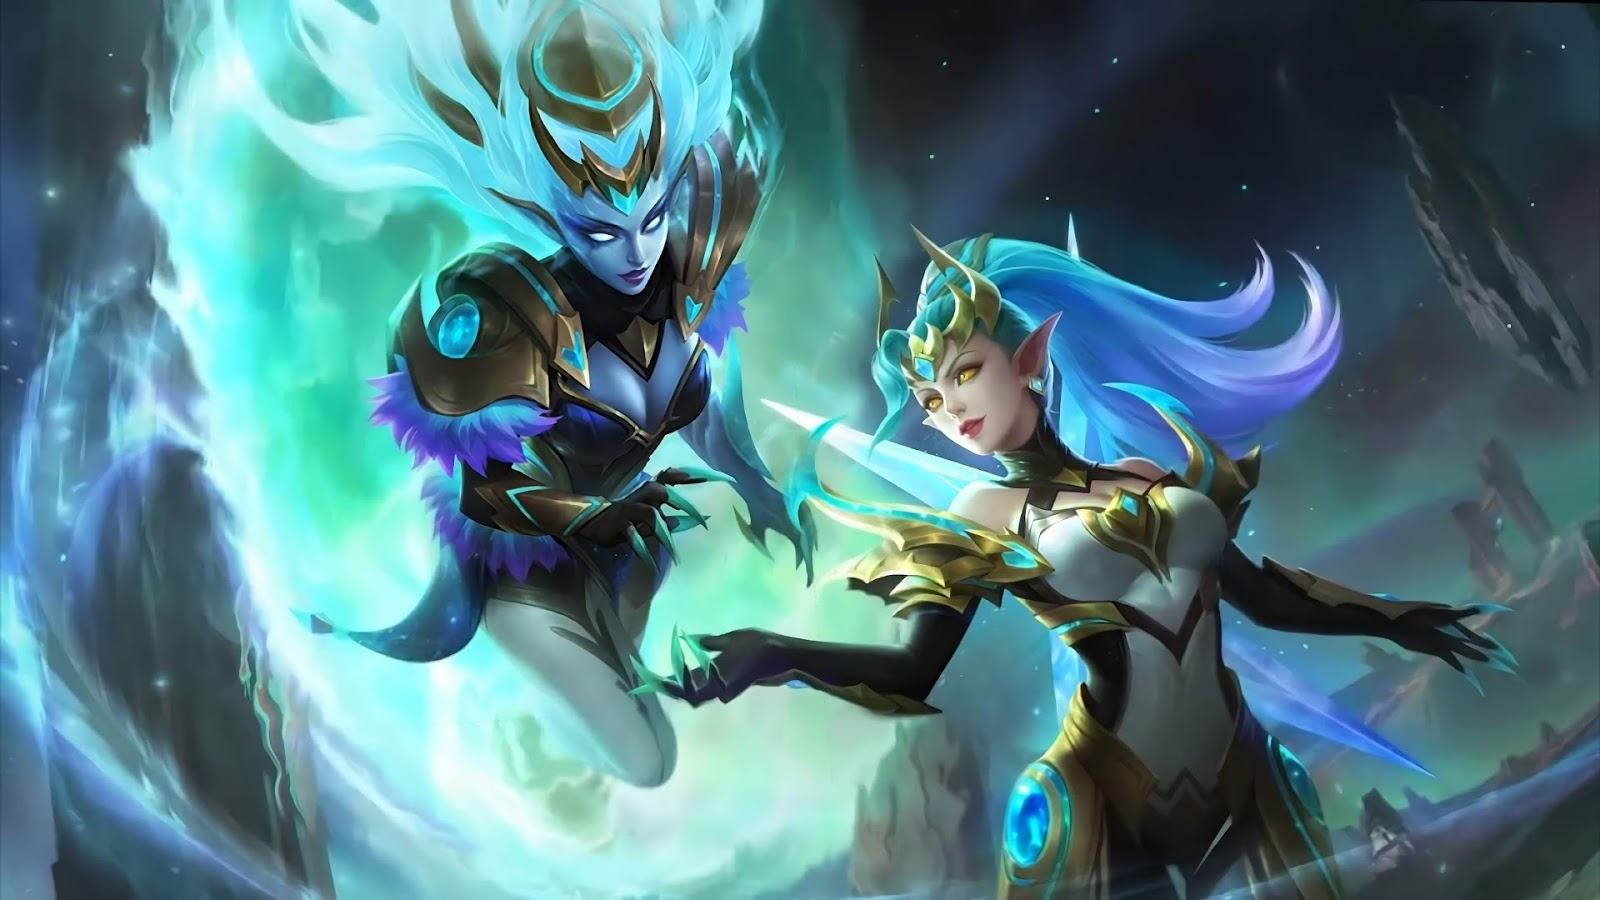 Wallpaper Selena Gemini Shadow Skin Mobile Legends HD for PC